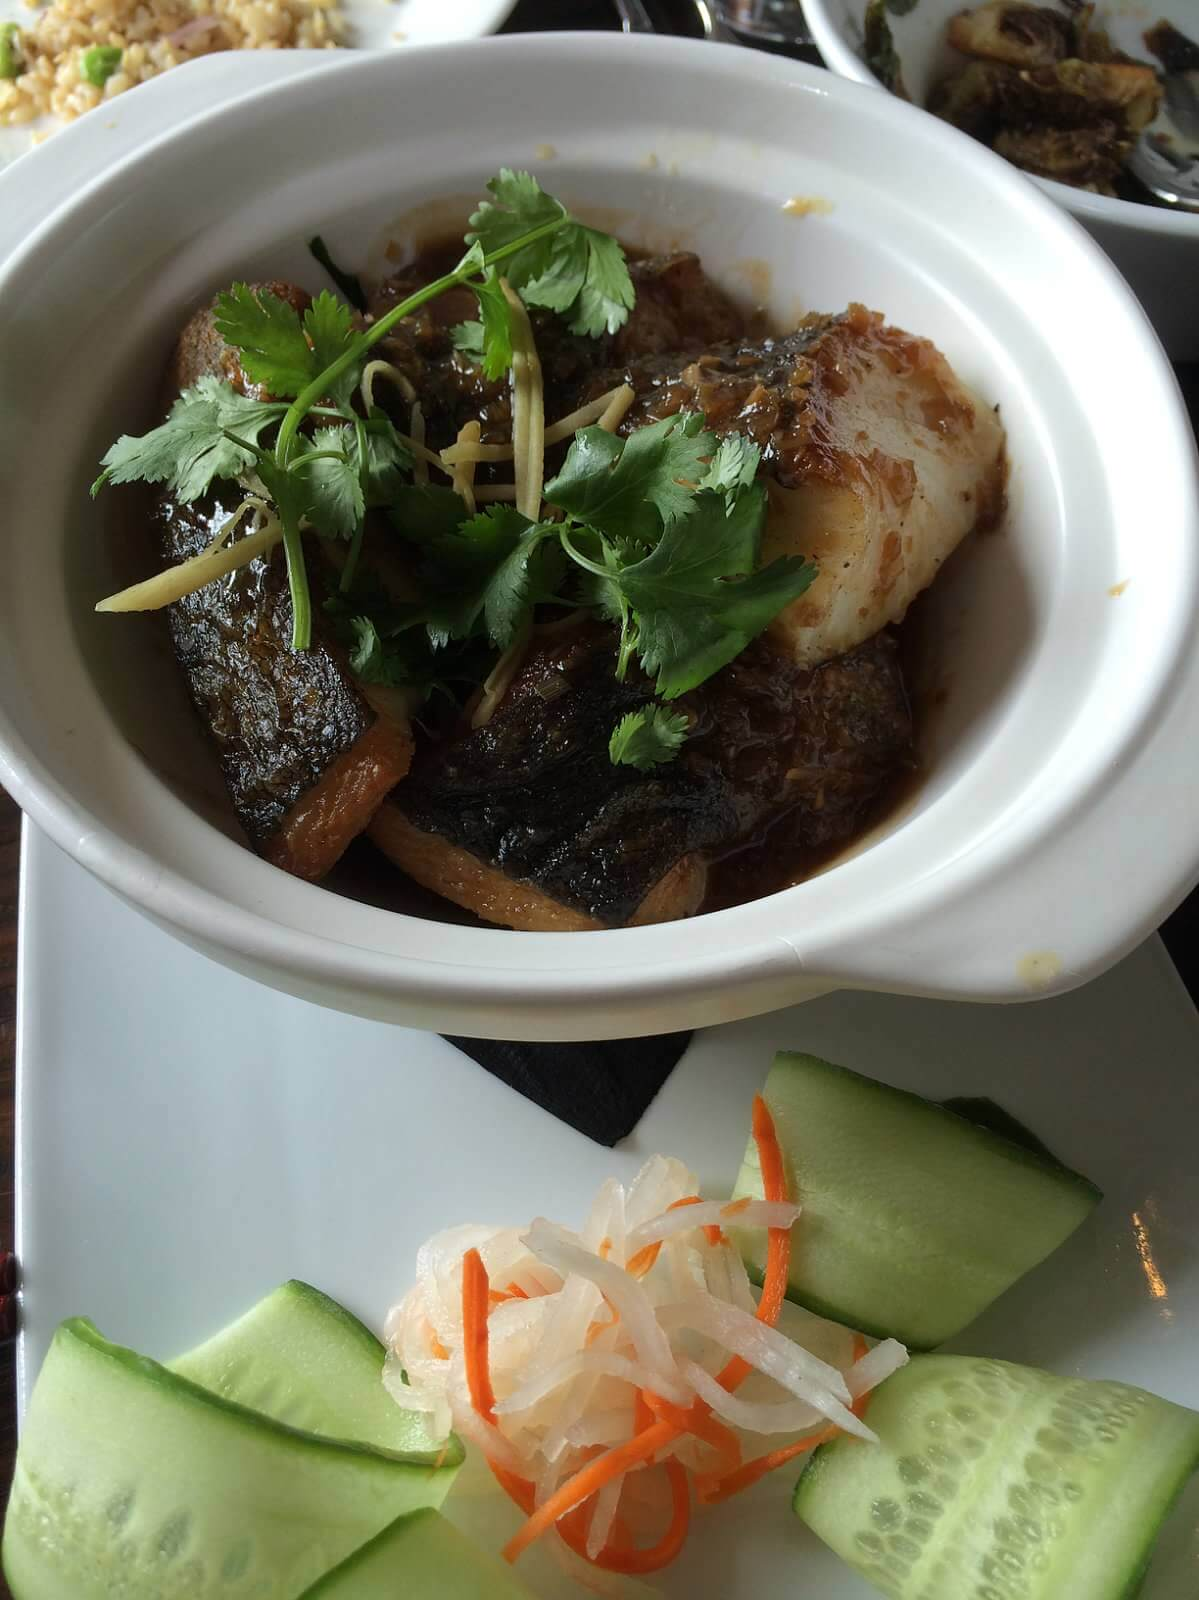 Ca Kho--Black Cod in a Clay pot.